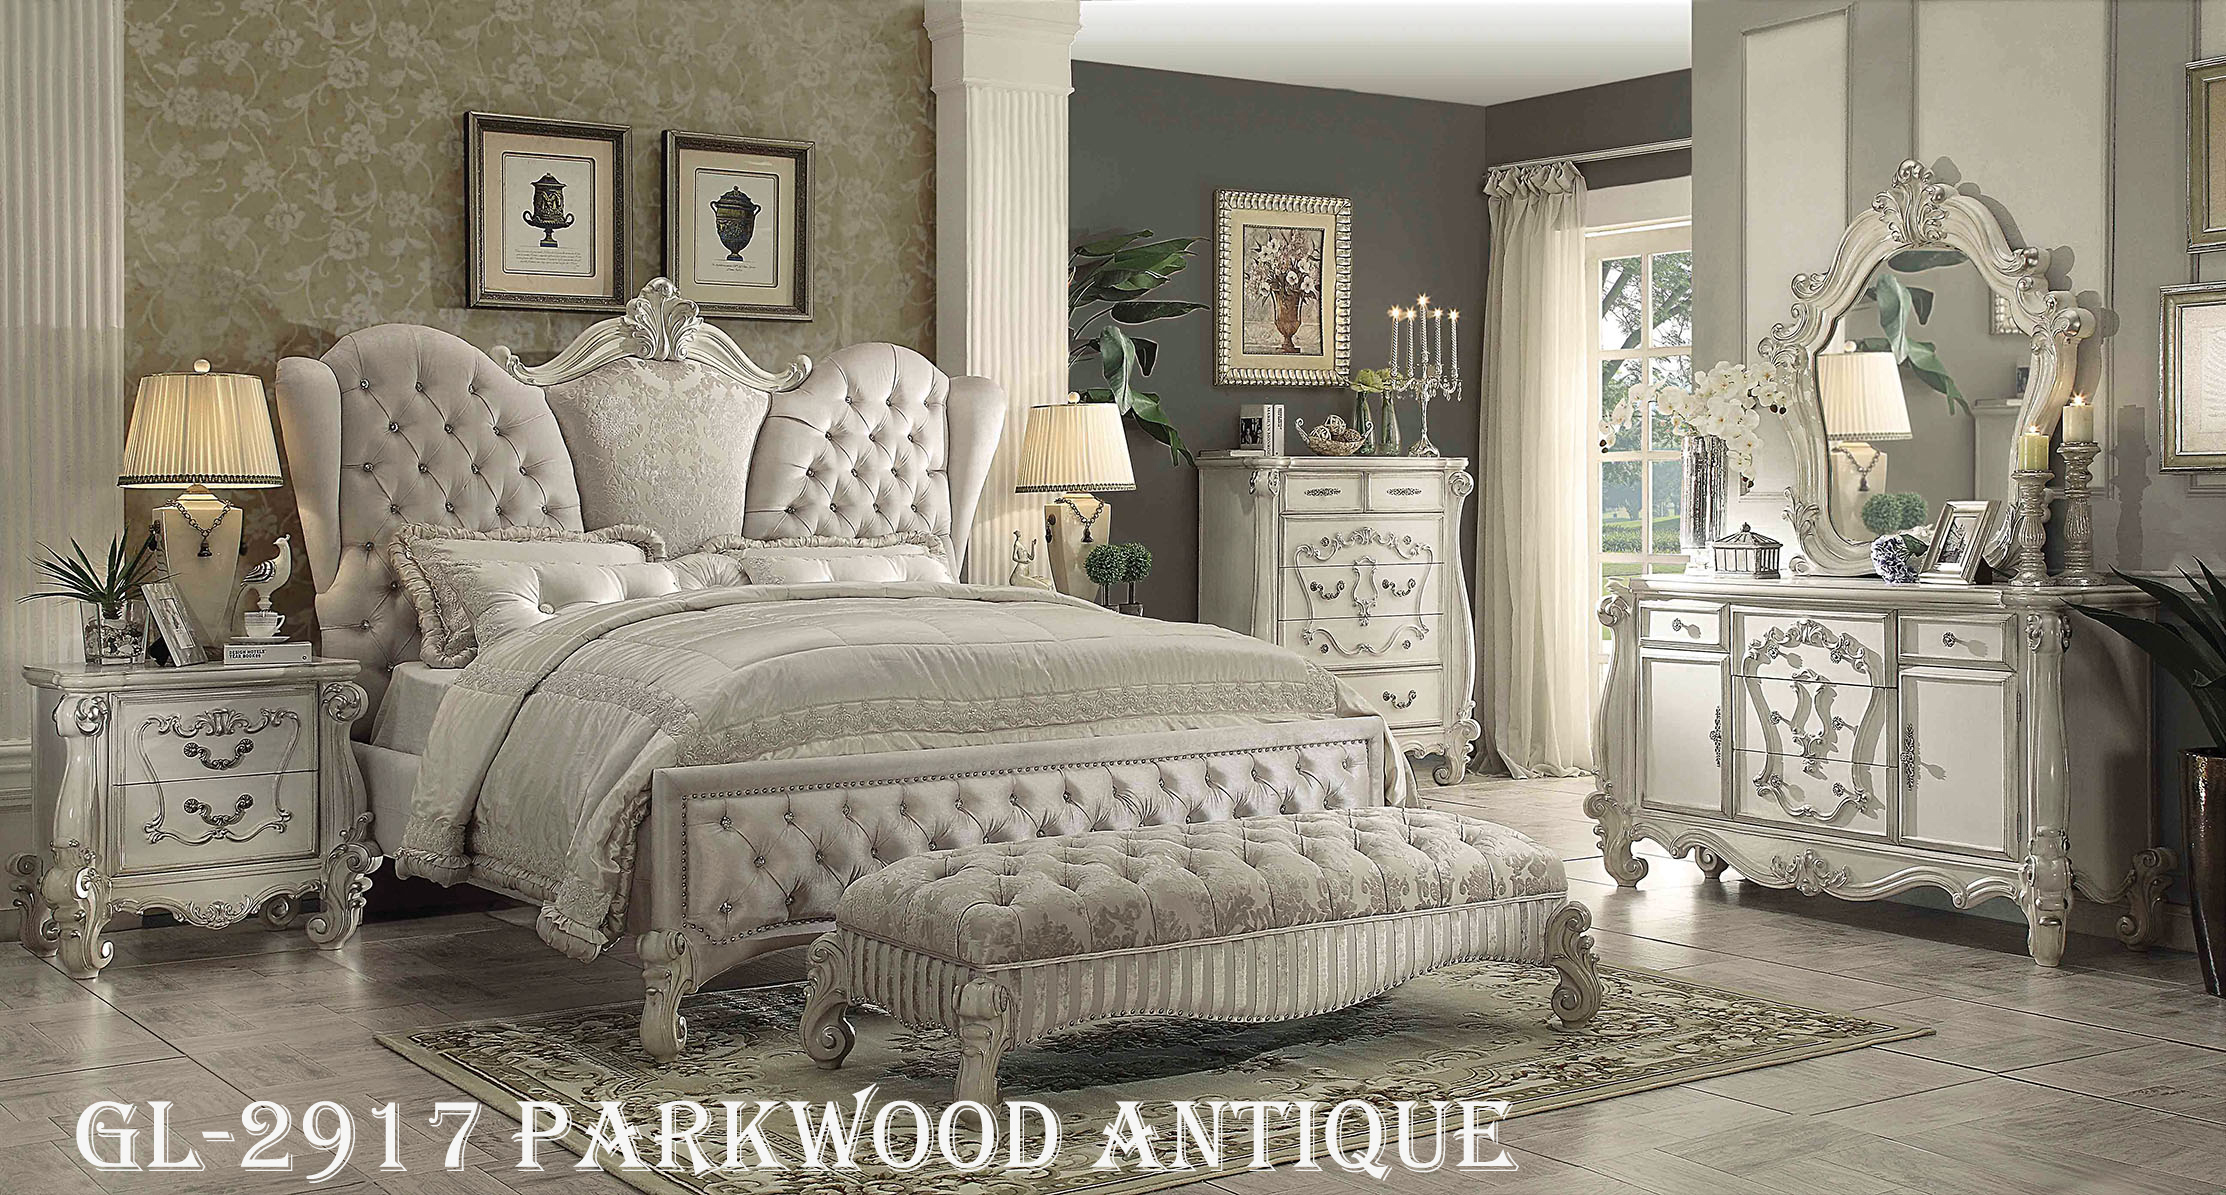 GL-2917 PARKWOOD ANTIQUE